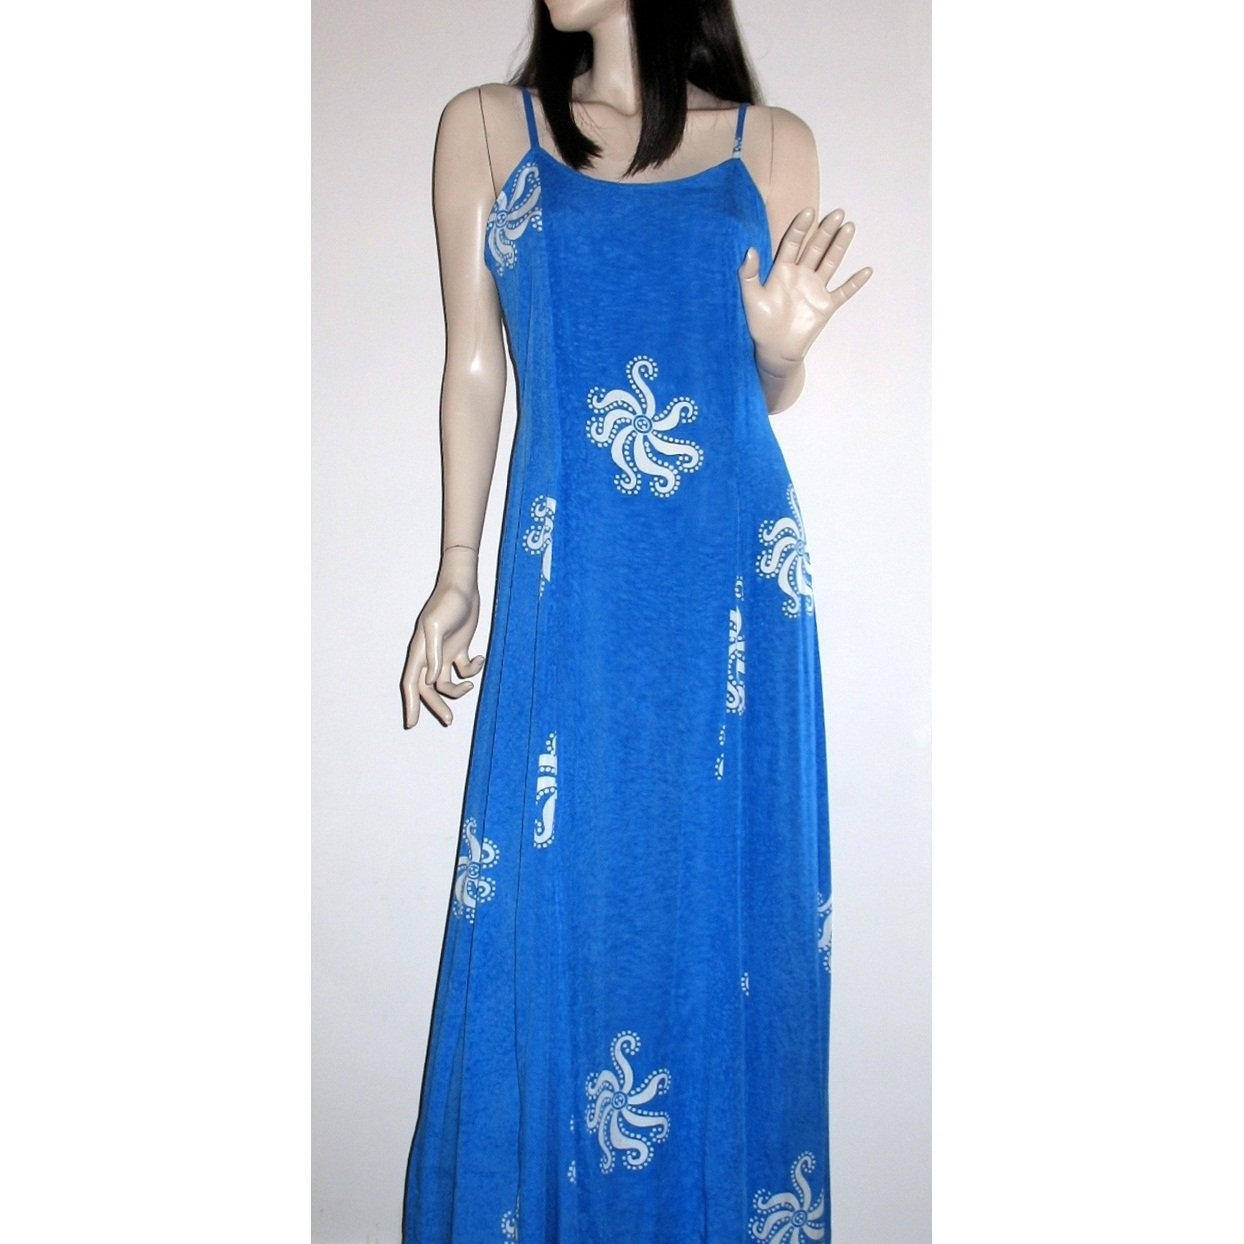 Vintage Slip Dress Sundress Long Length Maxi Size S/Small